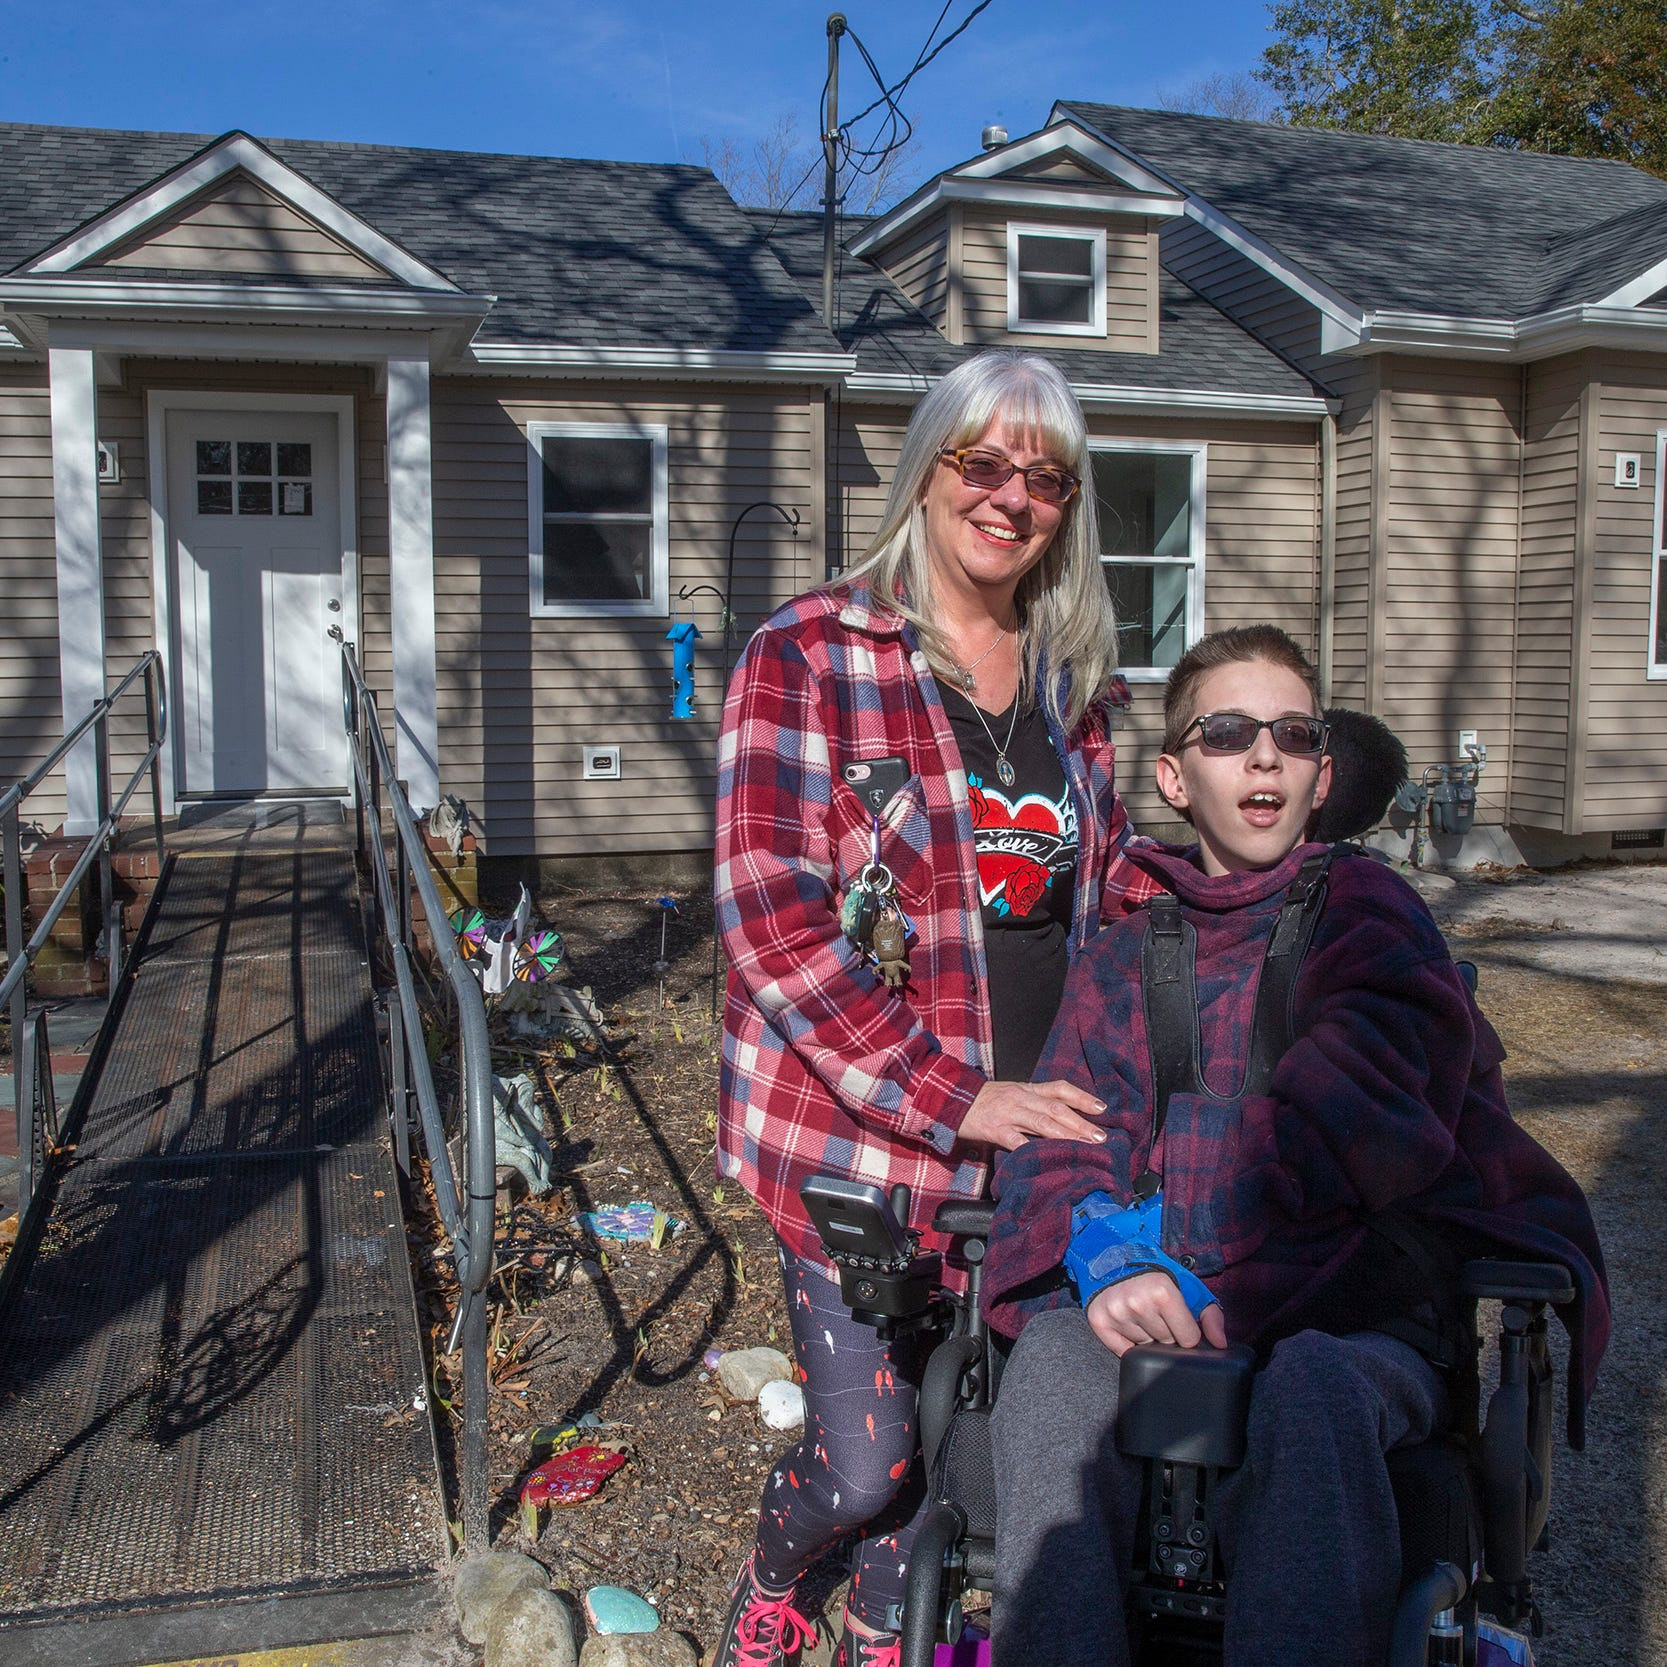 Berkeley rallies to support much-needed renovation of disabled teen's home; you can help